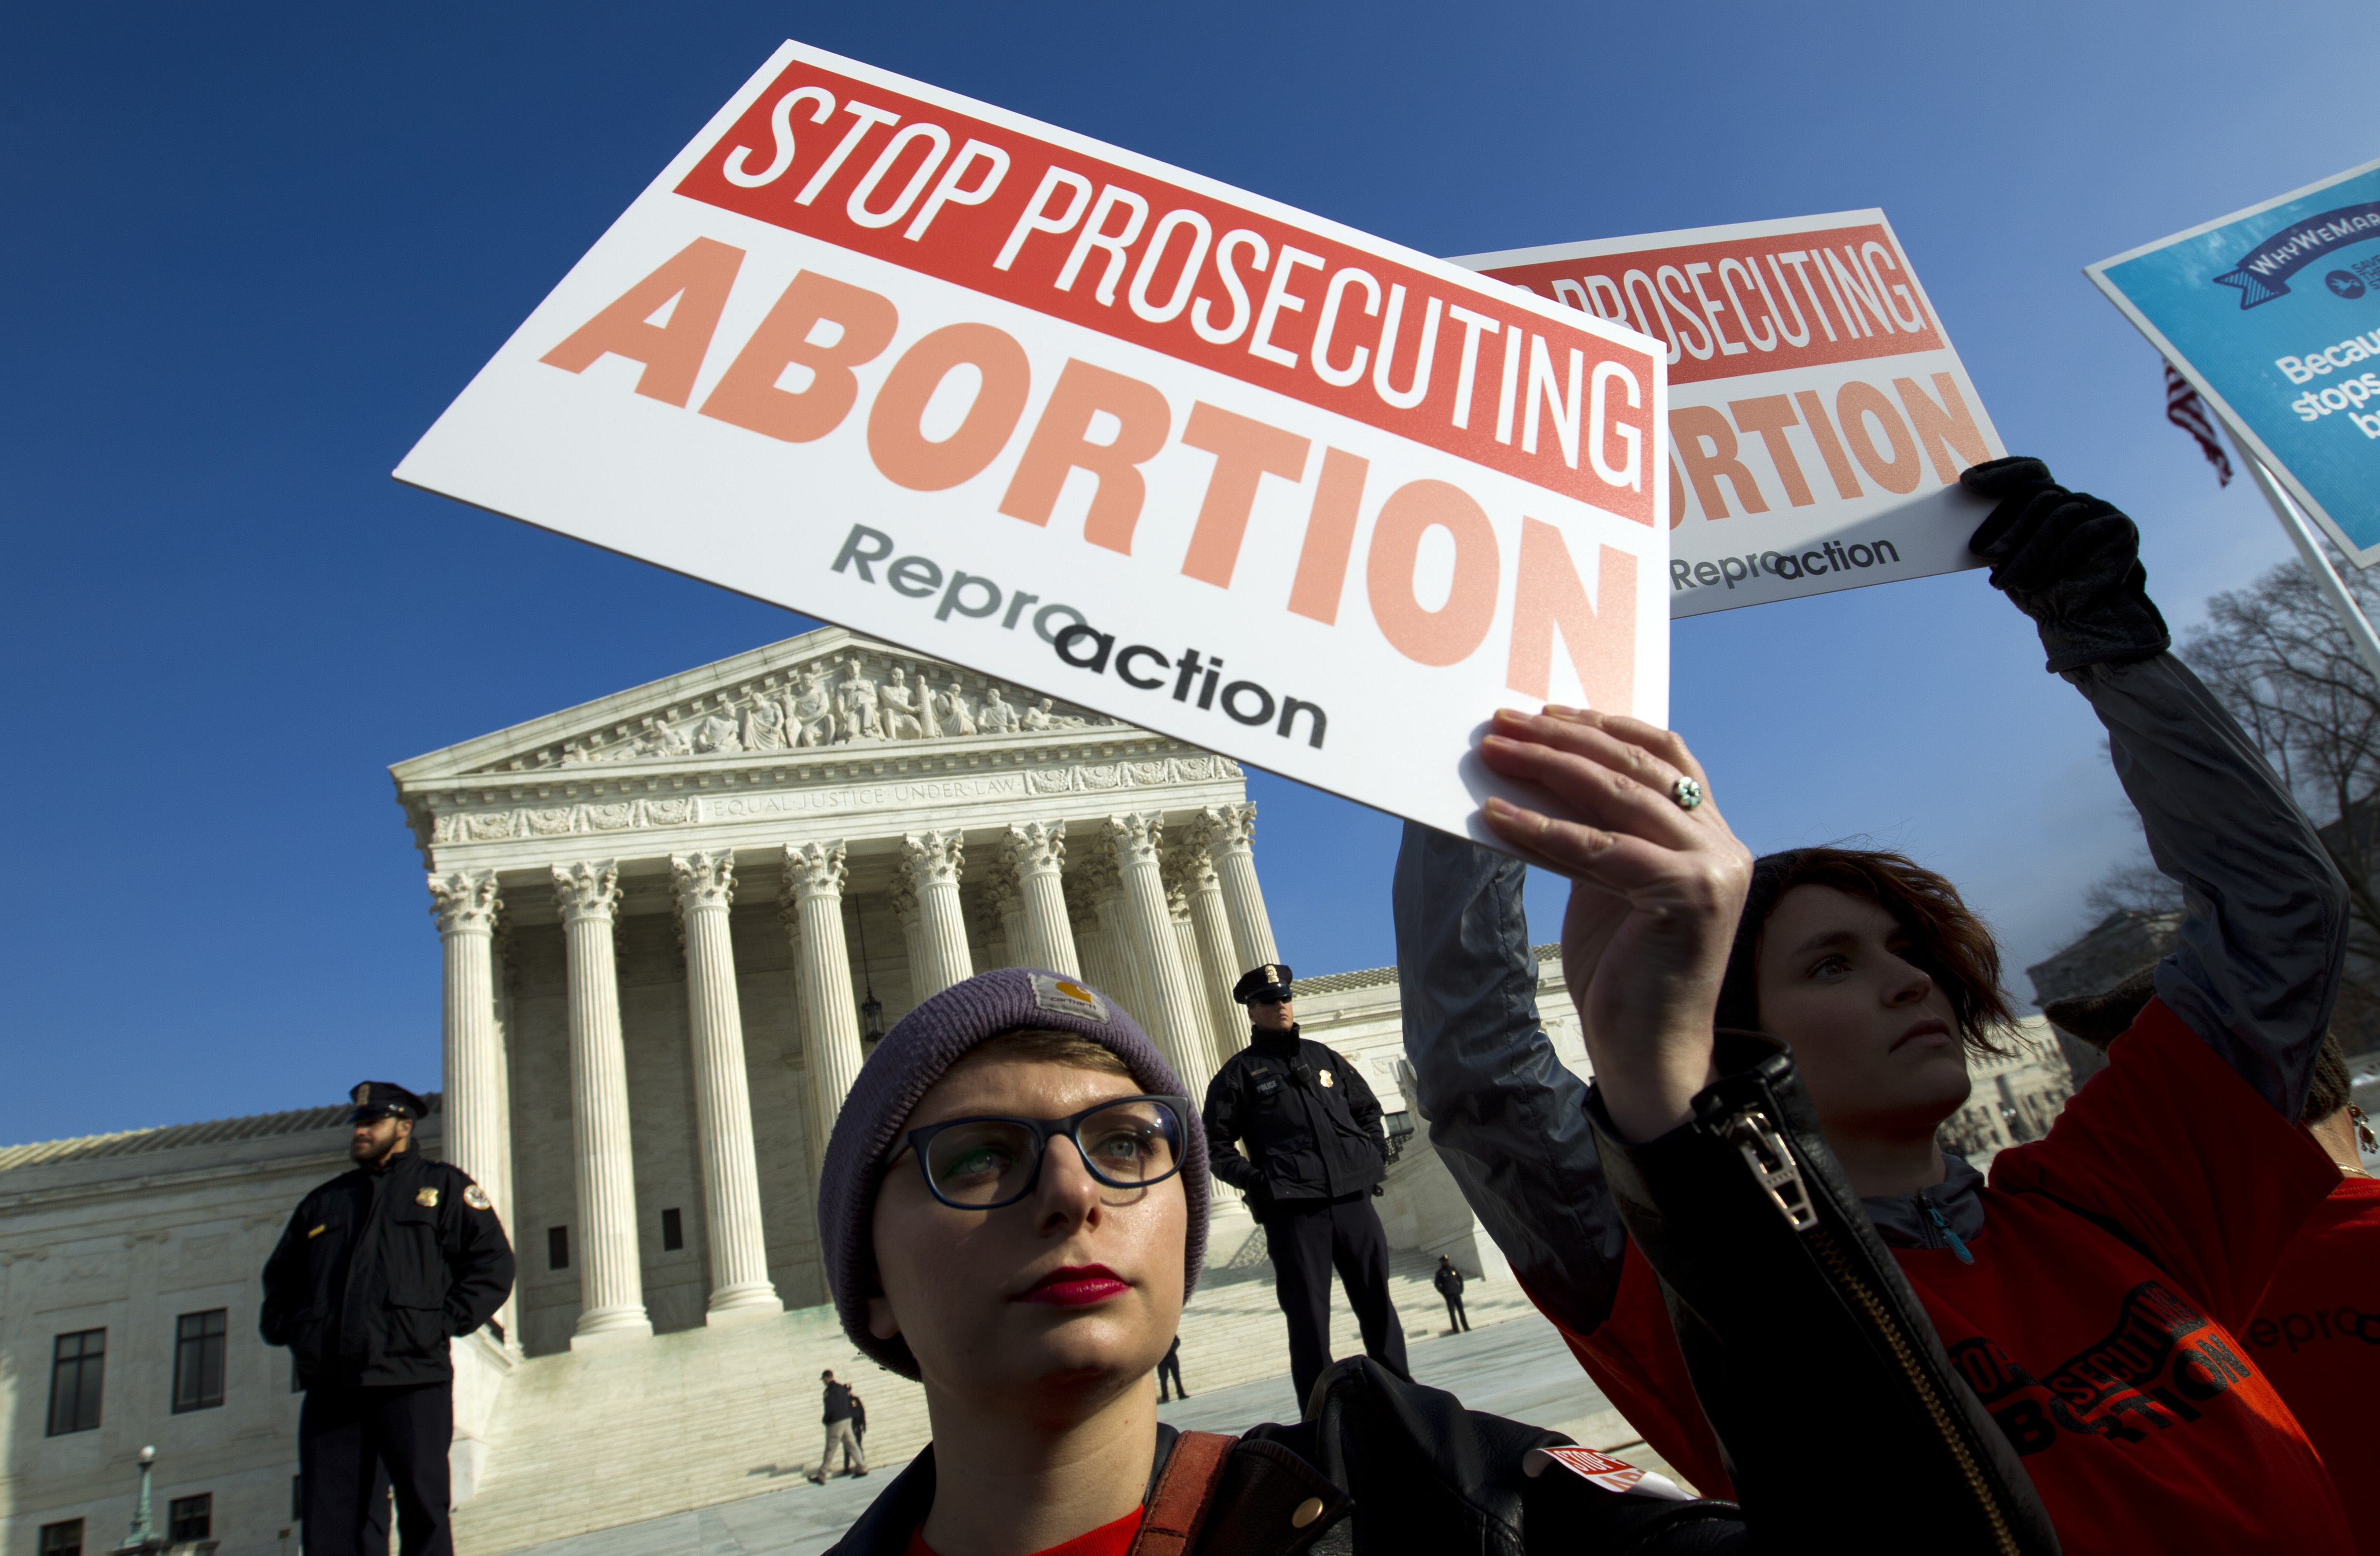 AP: Women Facing Restrictions Seek Abortions Out of State